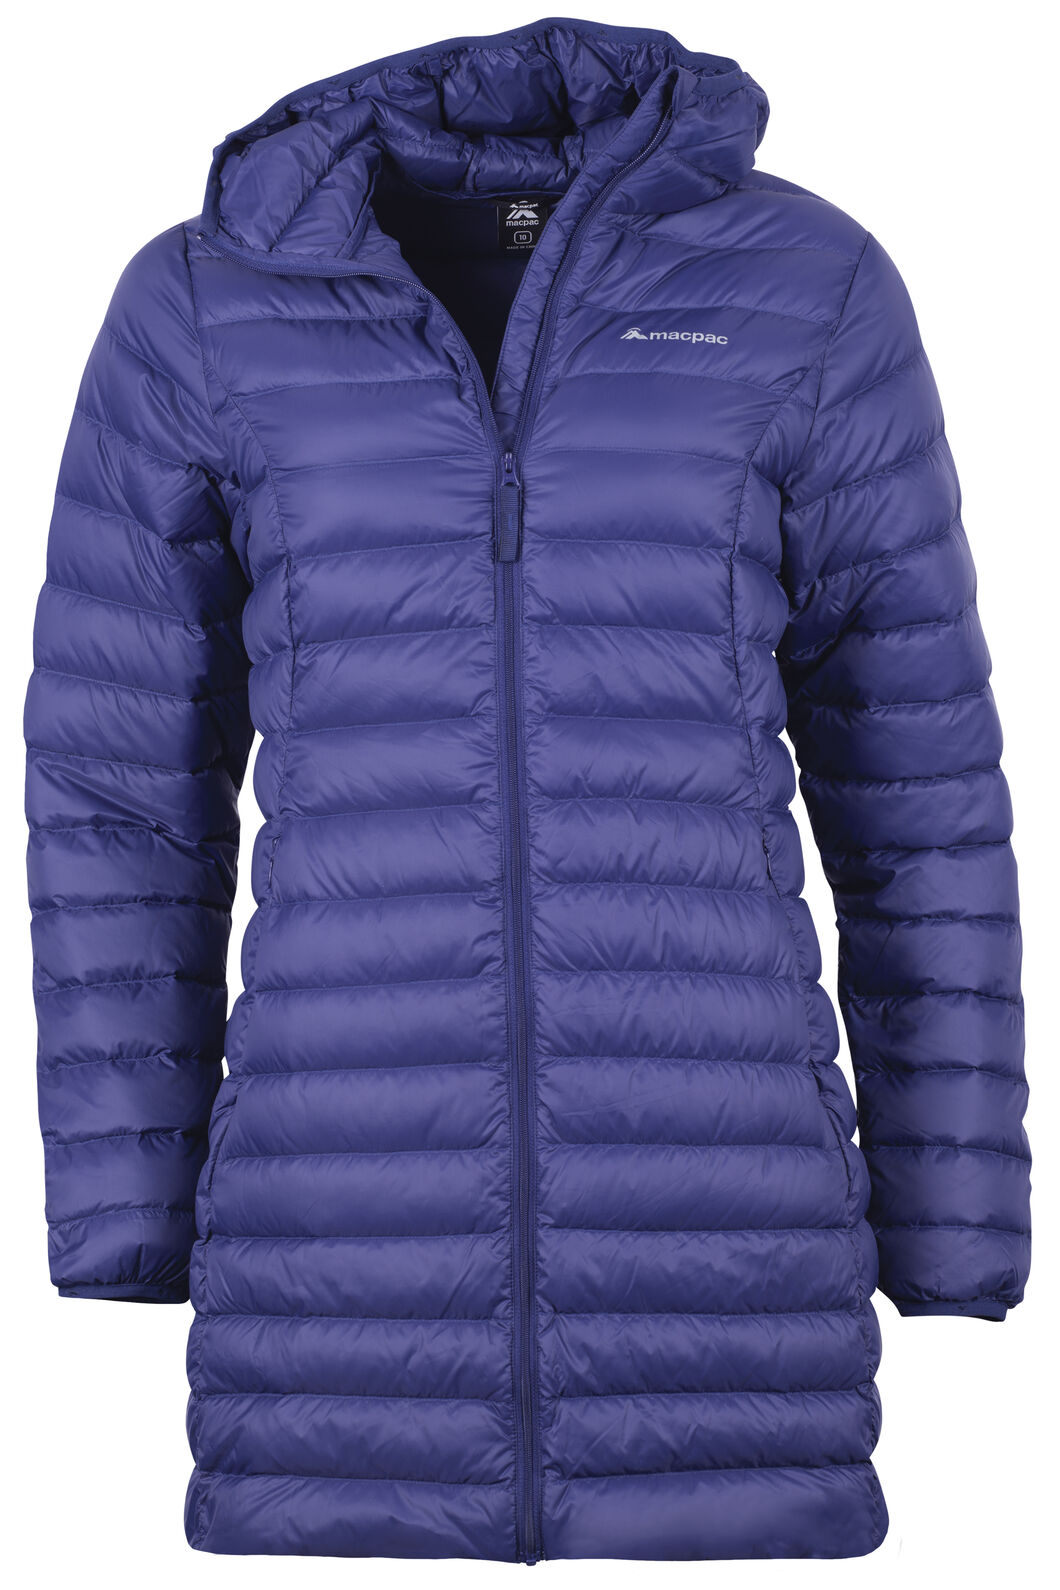 Macpac Uber Light Down Coat - Women's, Astral Aura, hi-res